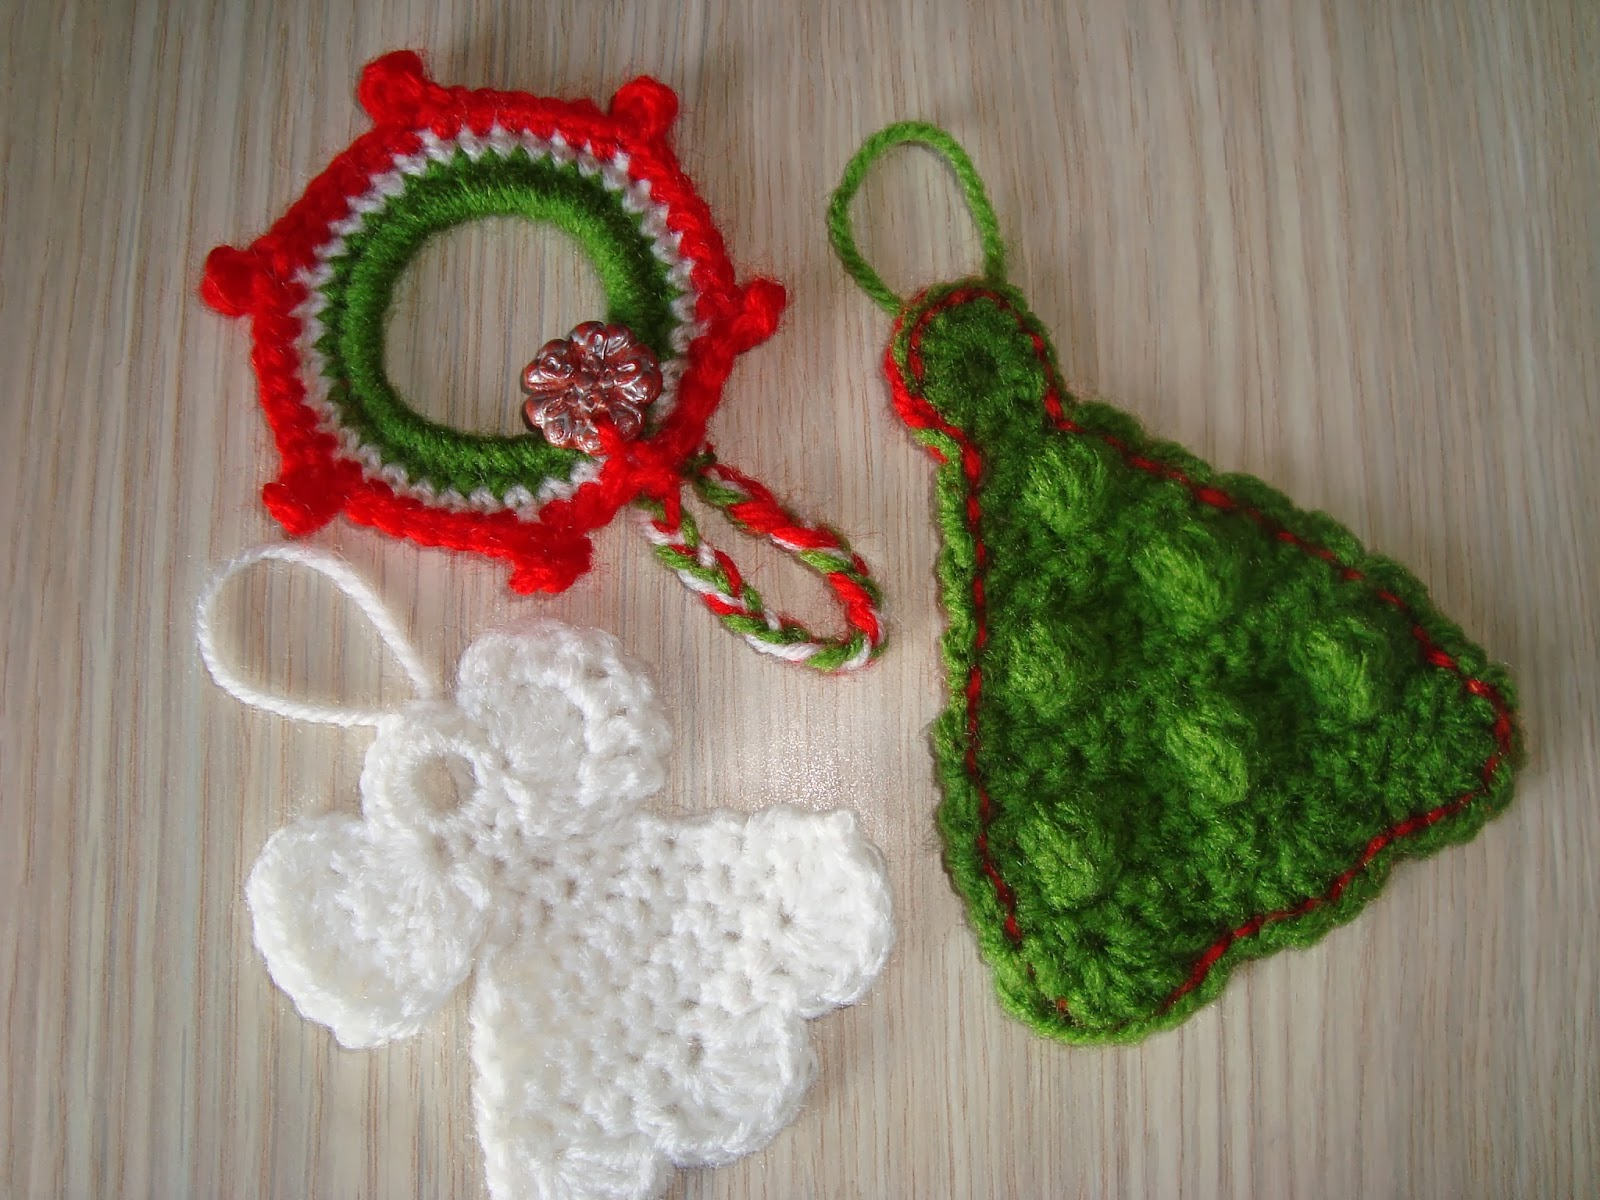 Free Thread Crochet Christmas Ornaments Patterns : Handmade by Camelia: Pattern: Three Ornaments Crocheted ...